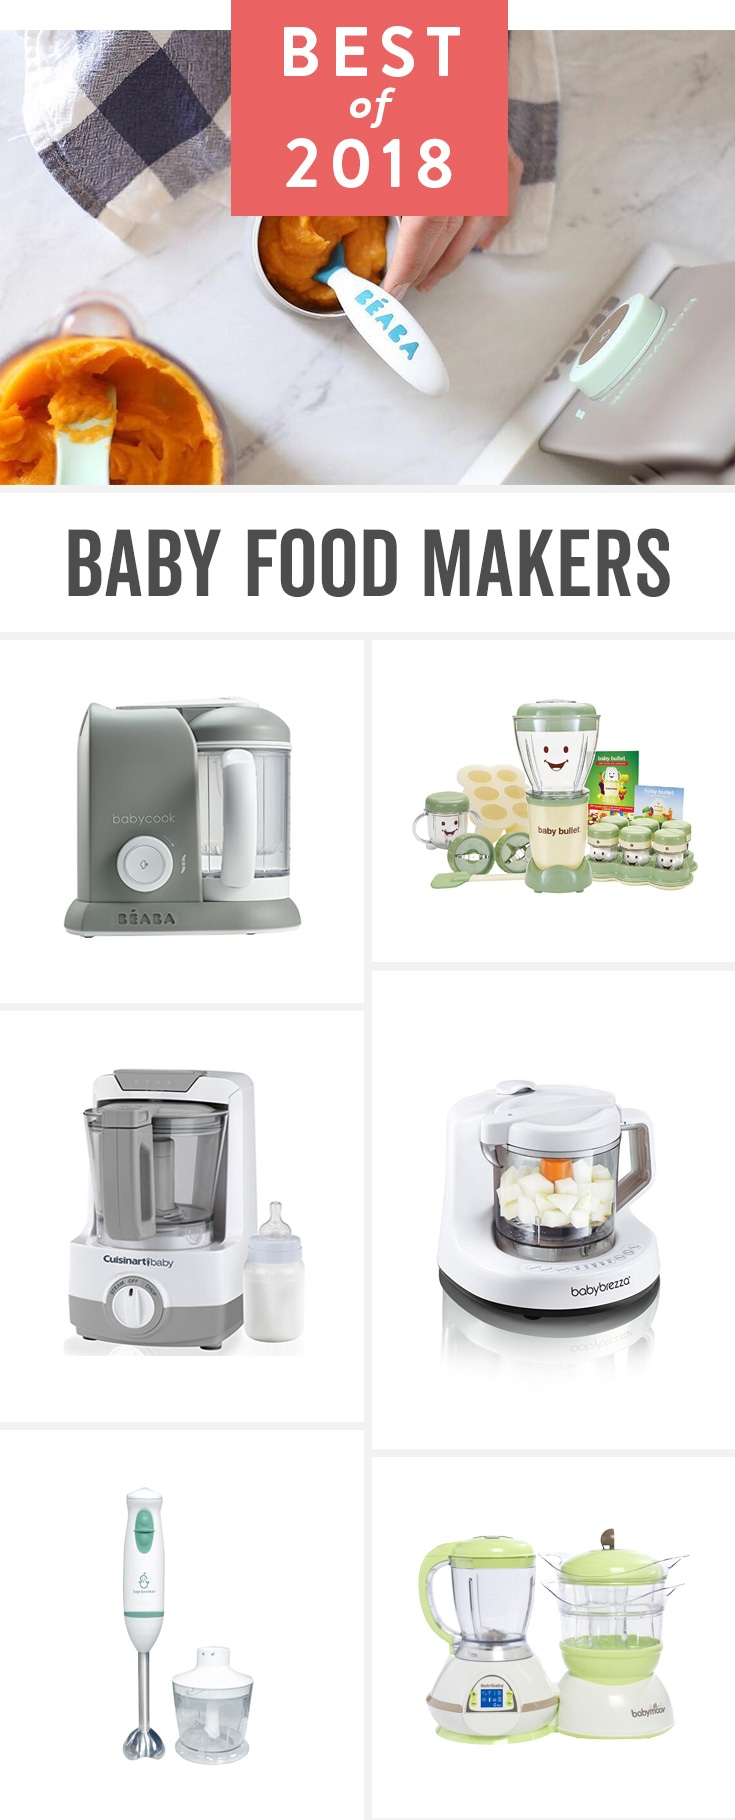 Making healthy, homemade baby food is a lot easier than it sounds, especially with one of these.